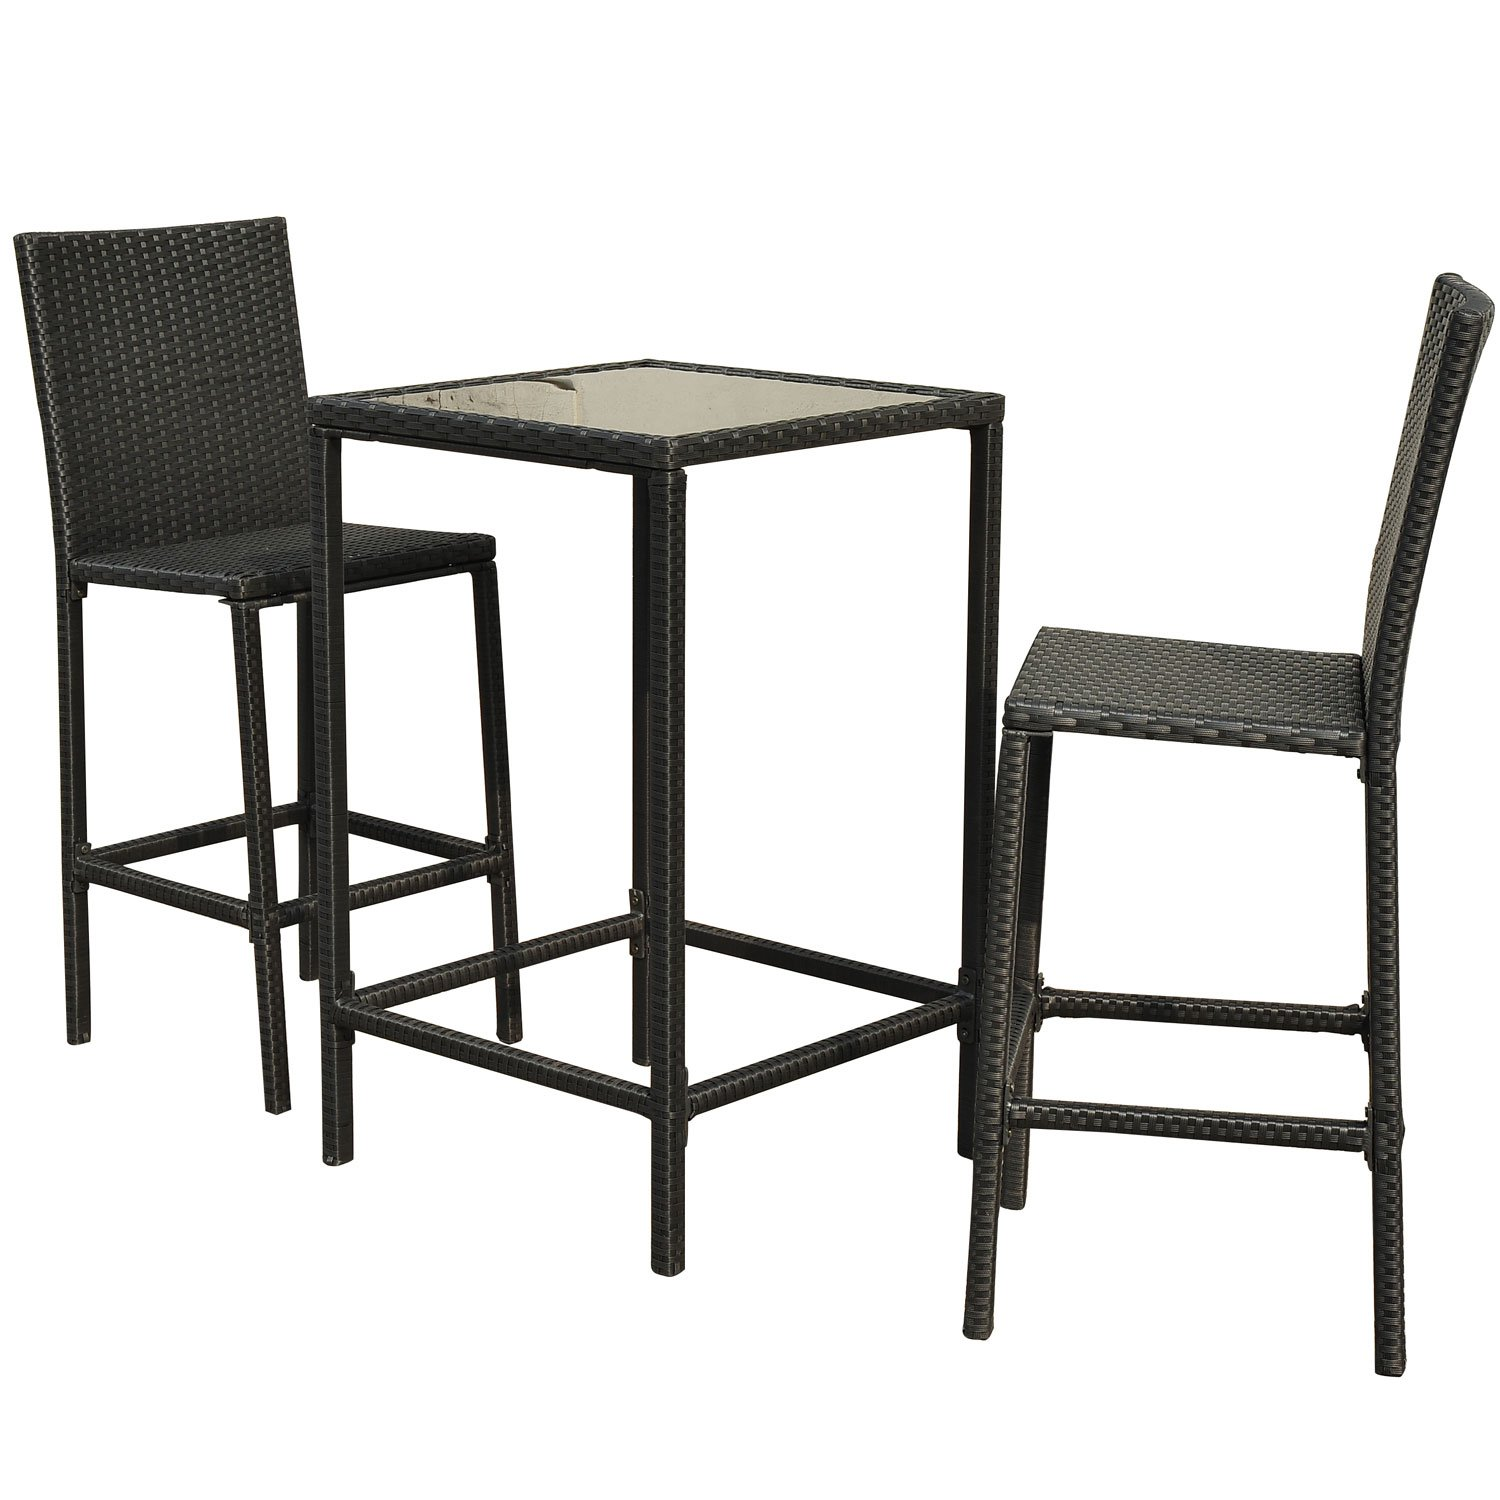 Amazon Outsunny 3 Piece Outdoor Rattan Wicker Patio Bistro